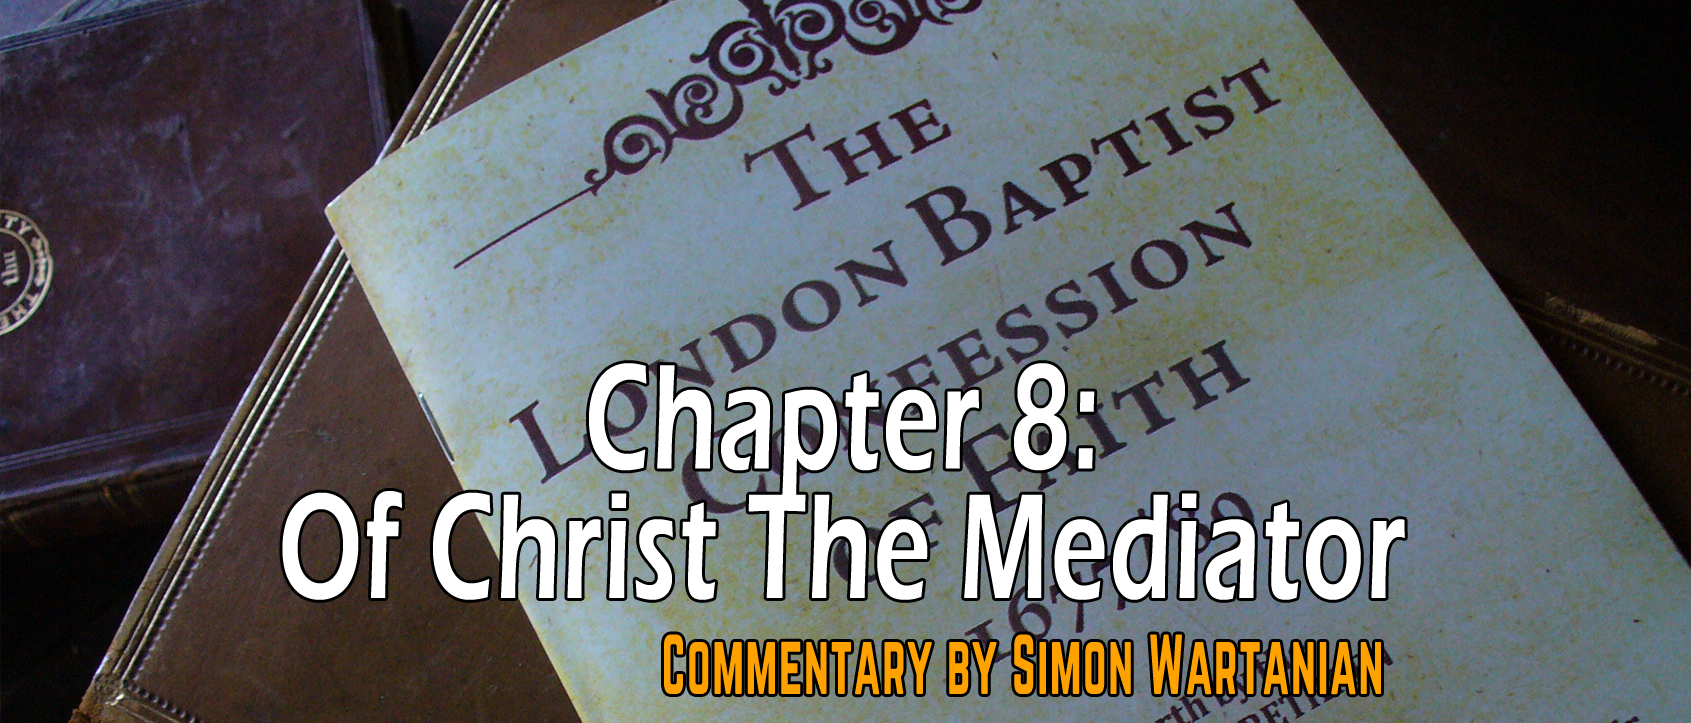 1689 Baptist Confession Chapter 8: Of Christ the Mediator - Commentary